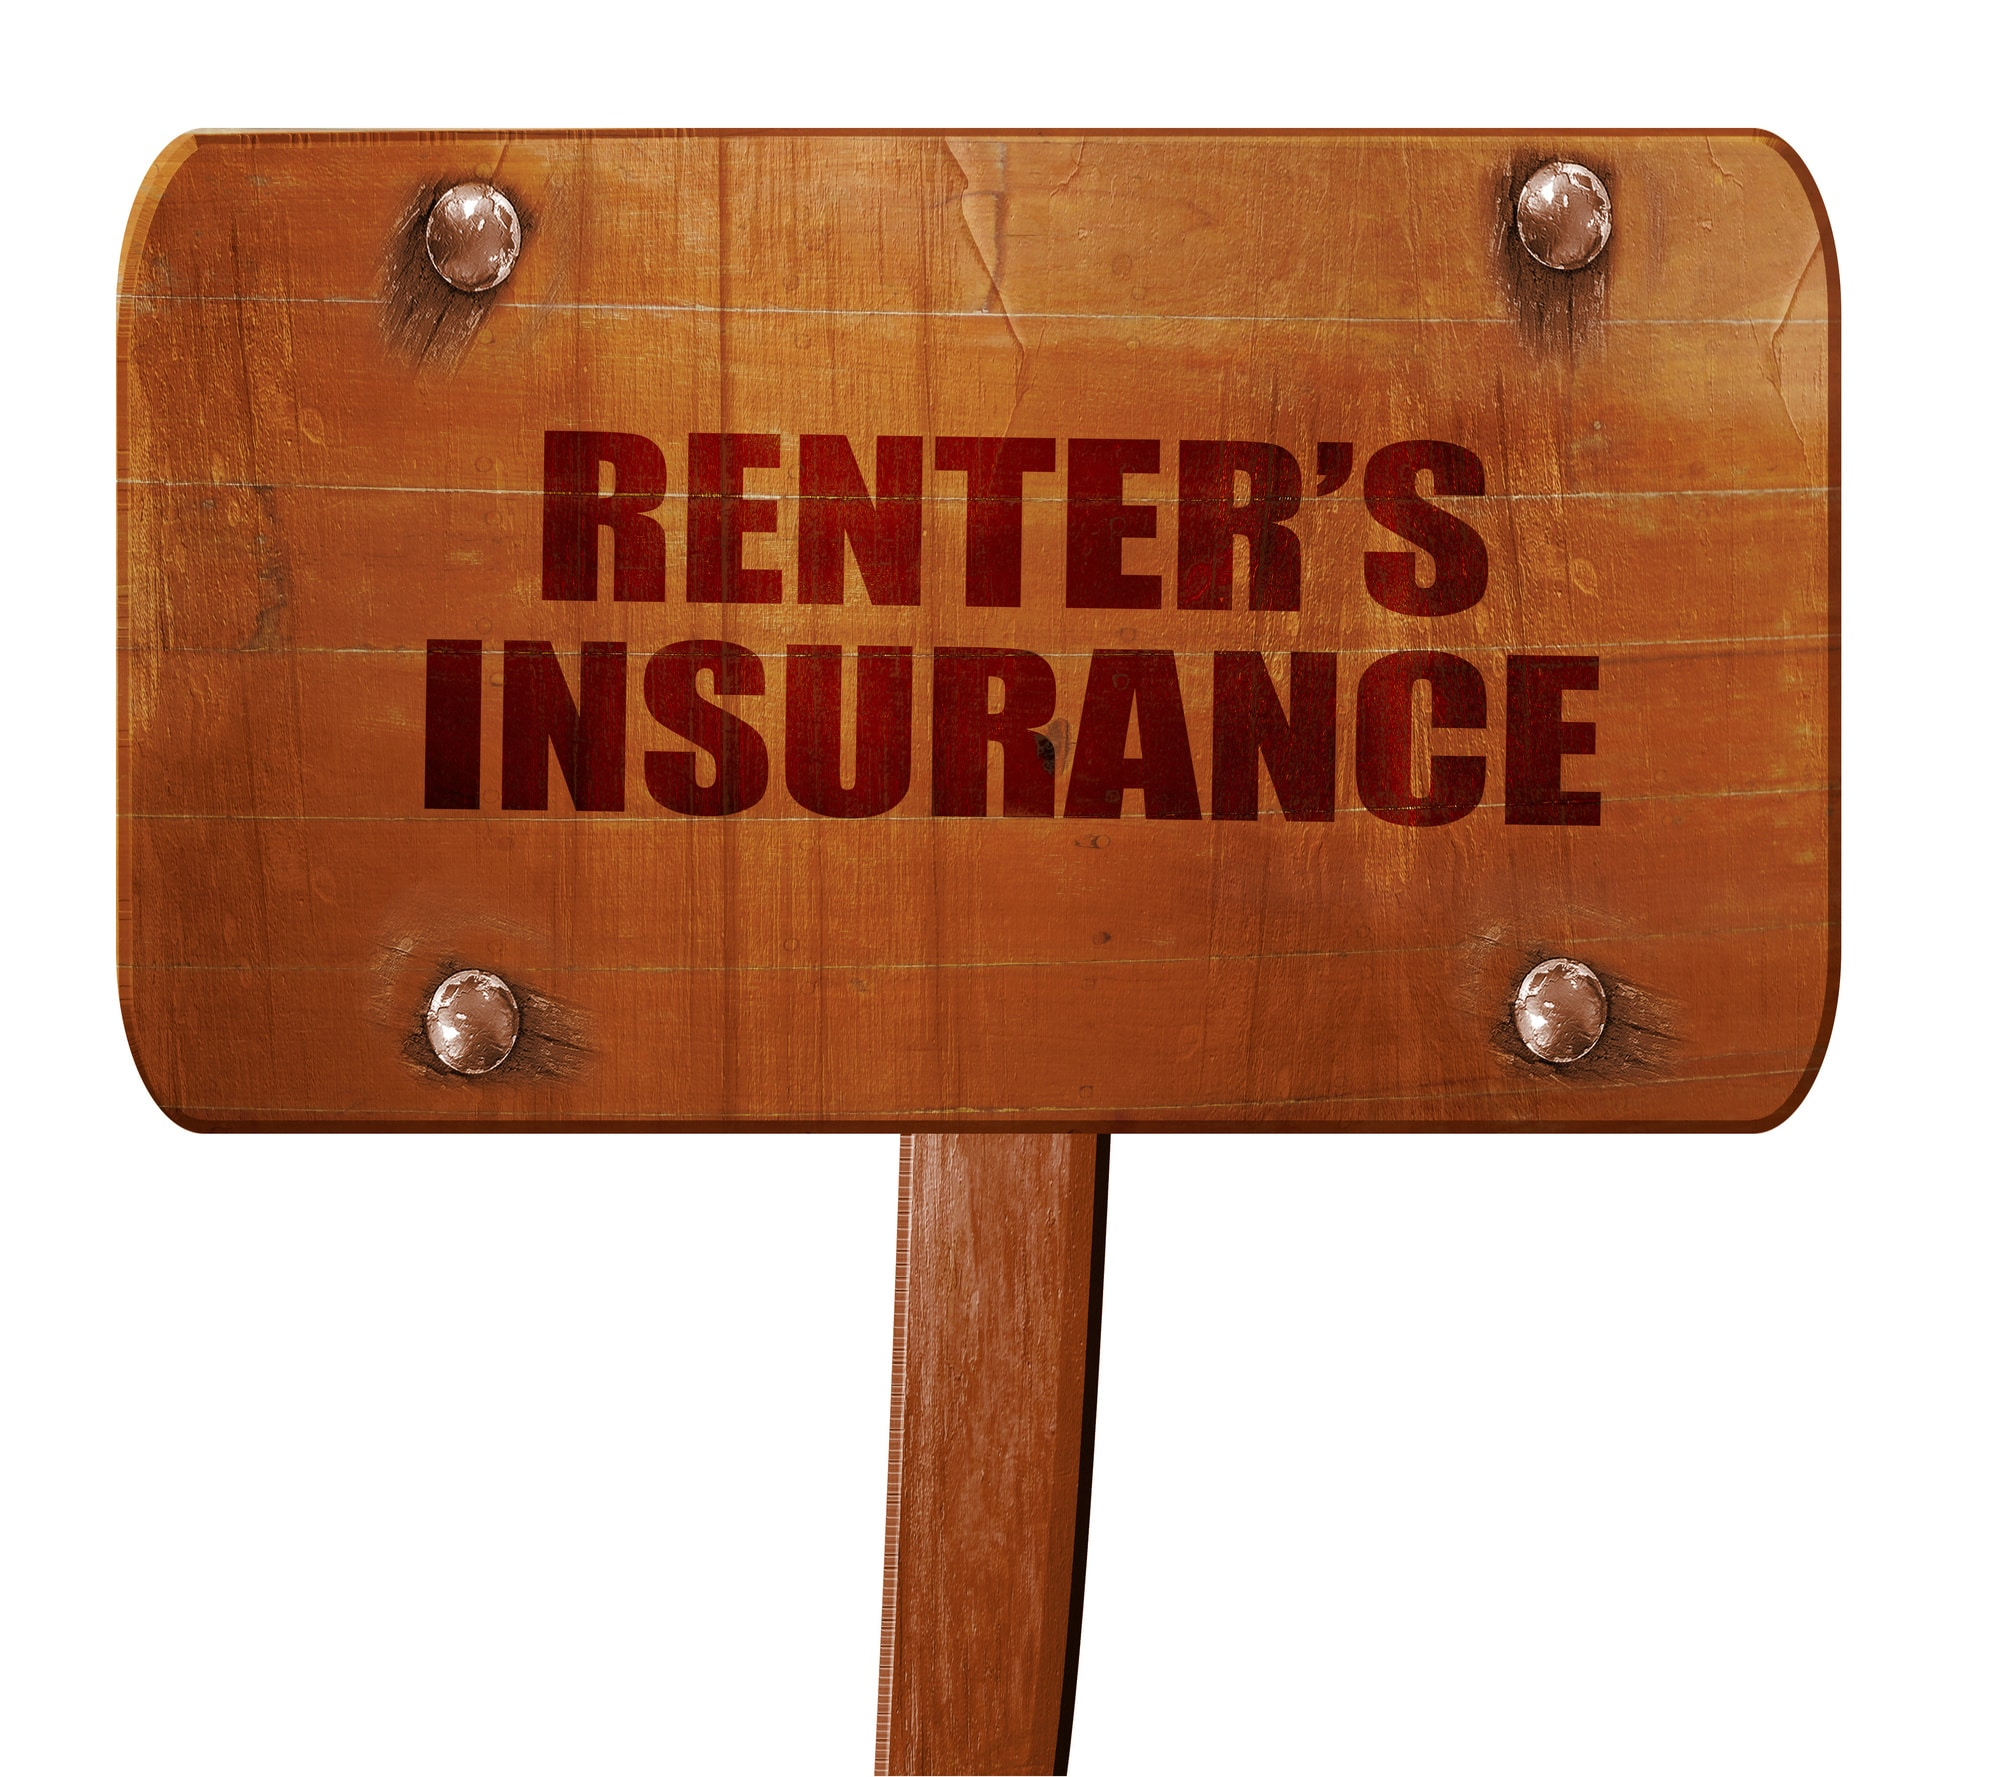 A Guide For Renters: What Does Renter's Insurance Cover?